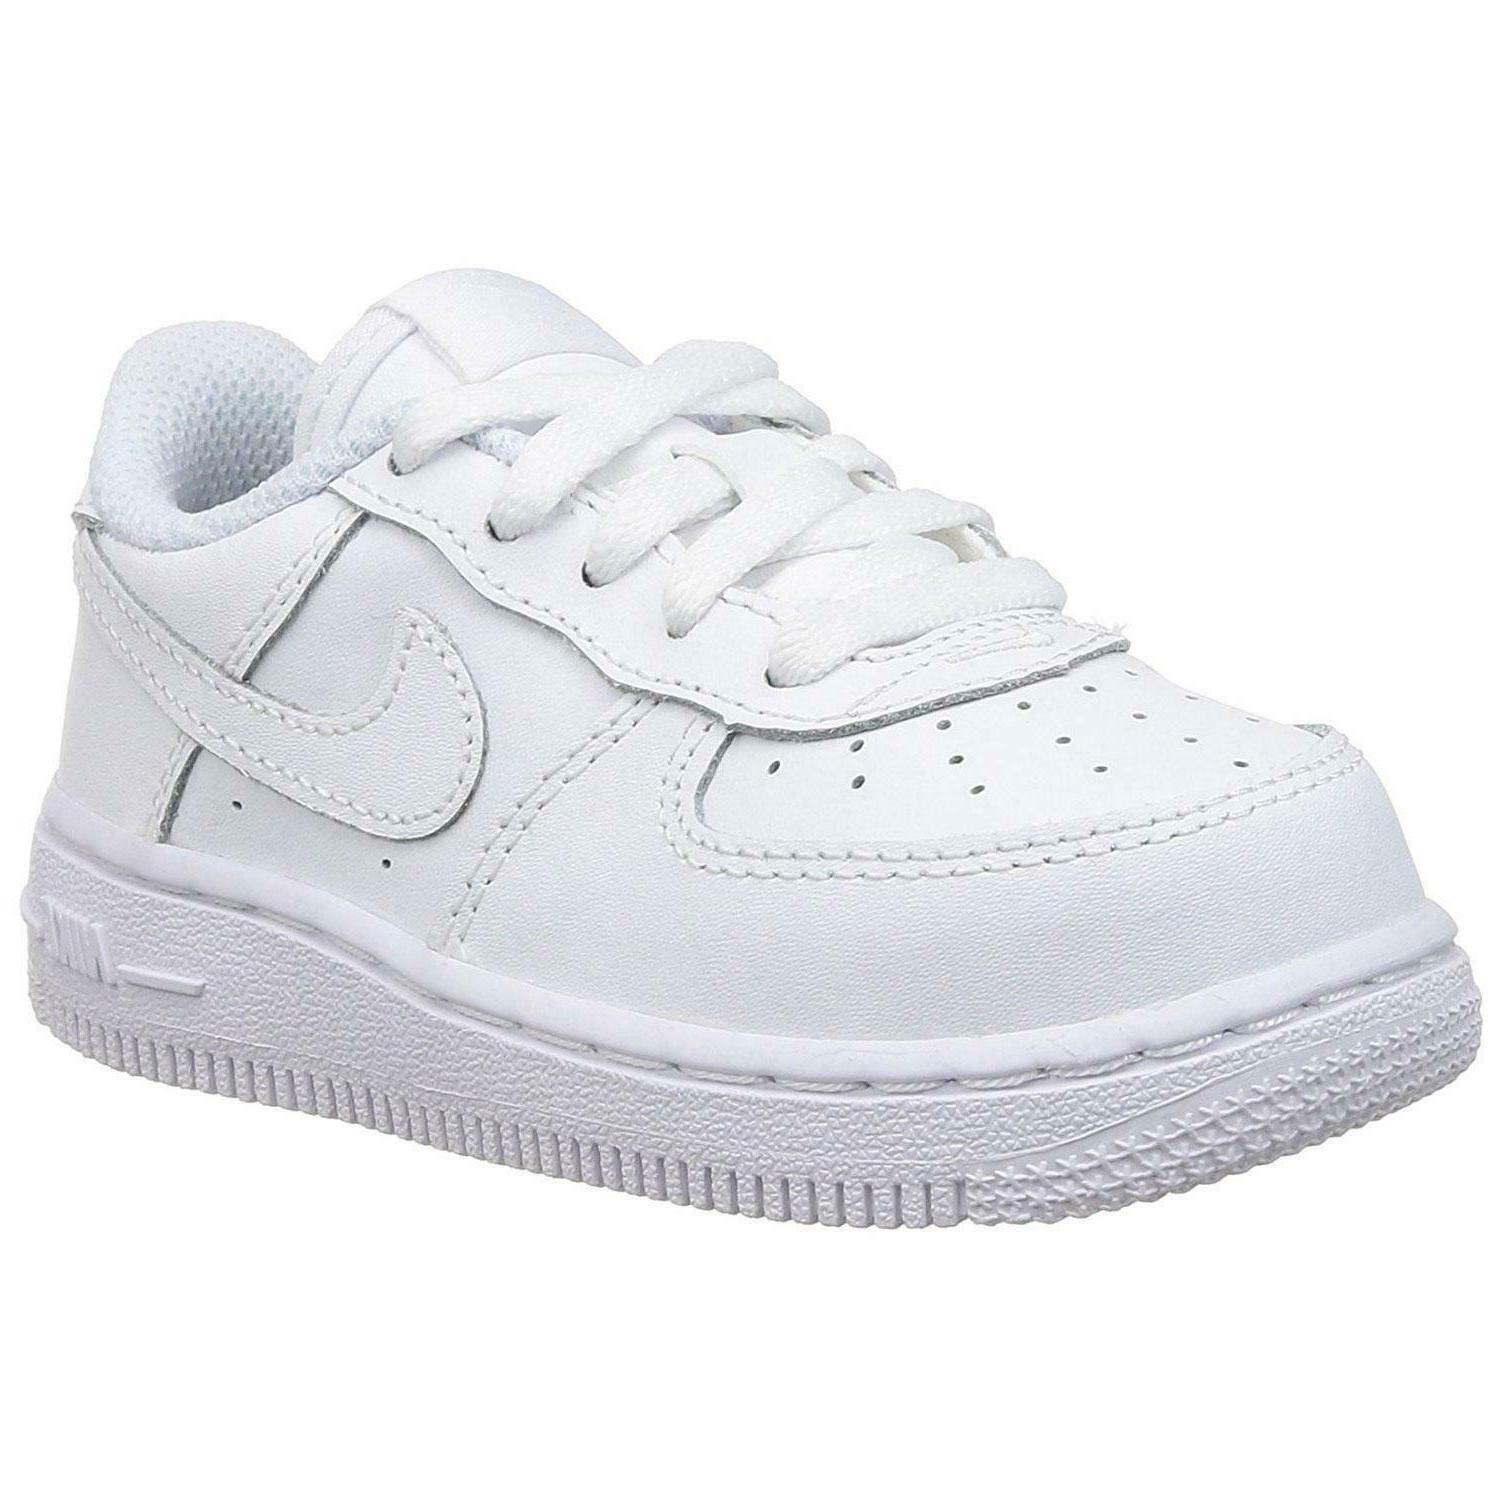 Nike Air 1 Shoes NEW White 314194-117